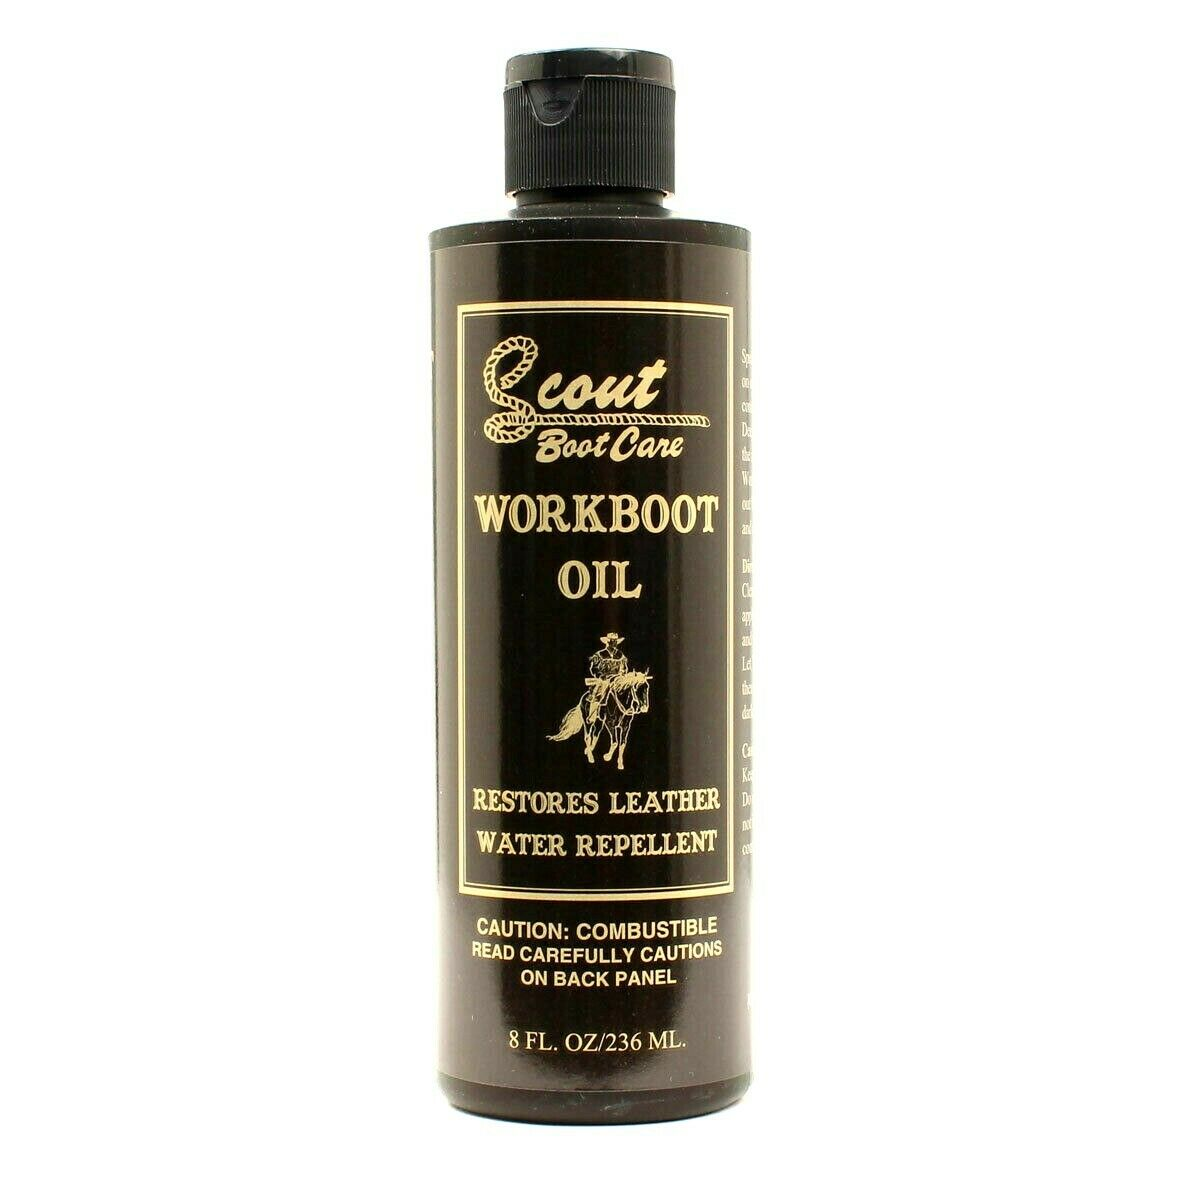 Scout Boot Care - WORKBOOT OIL - 8 Ounce Bottle - Boot and Leather Care